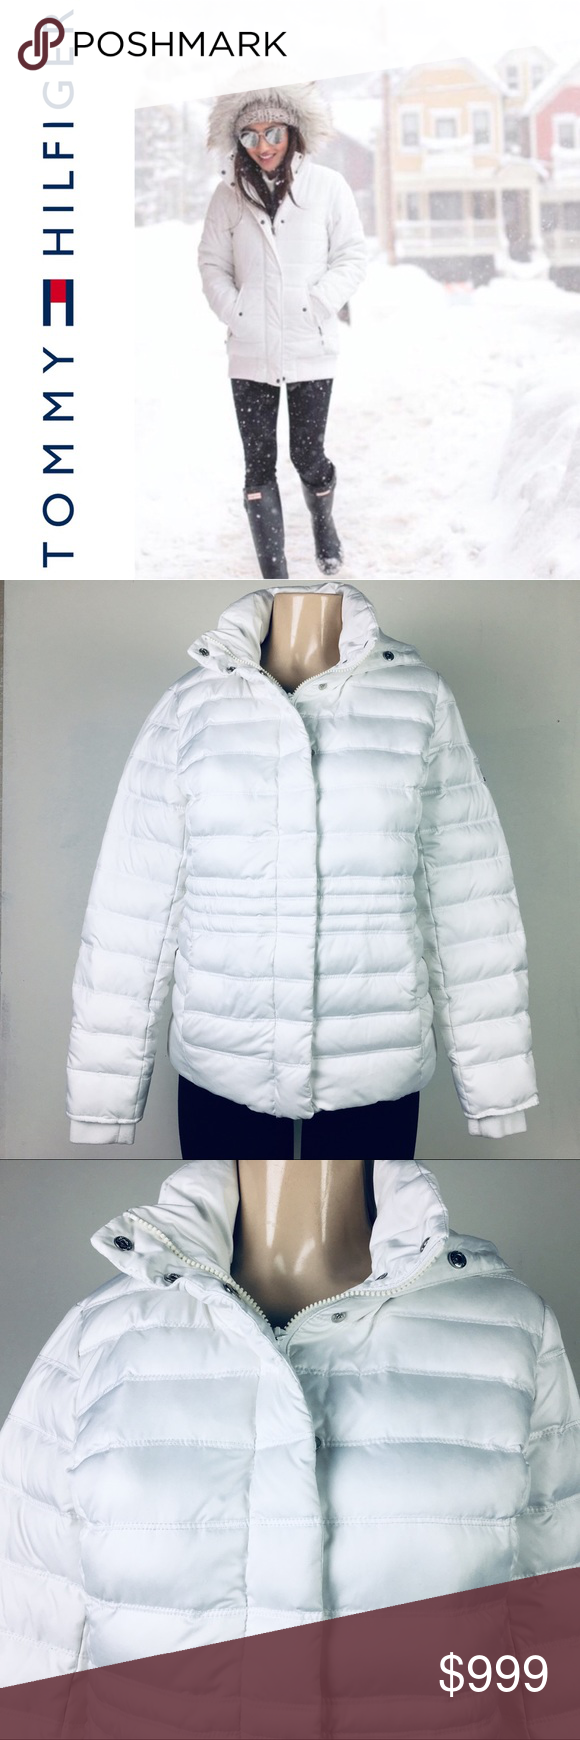 Tommy Hilfiger White Puffer Jacket Like New Beautiful Bright White Hooded Coat With Hilfiger Logo On La White Puffer Jacket Jackets Tommy Hilfiger Jackets [ 1740 x 580 Pixel ]